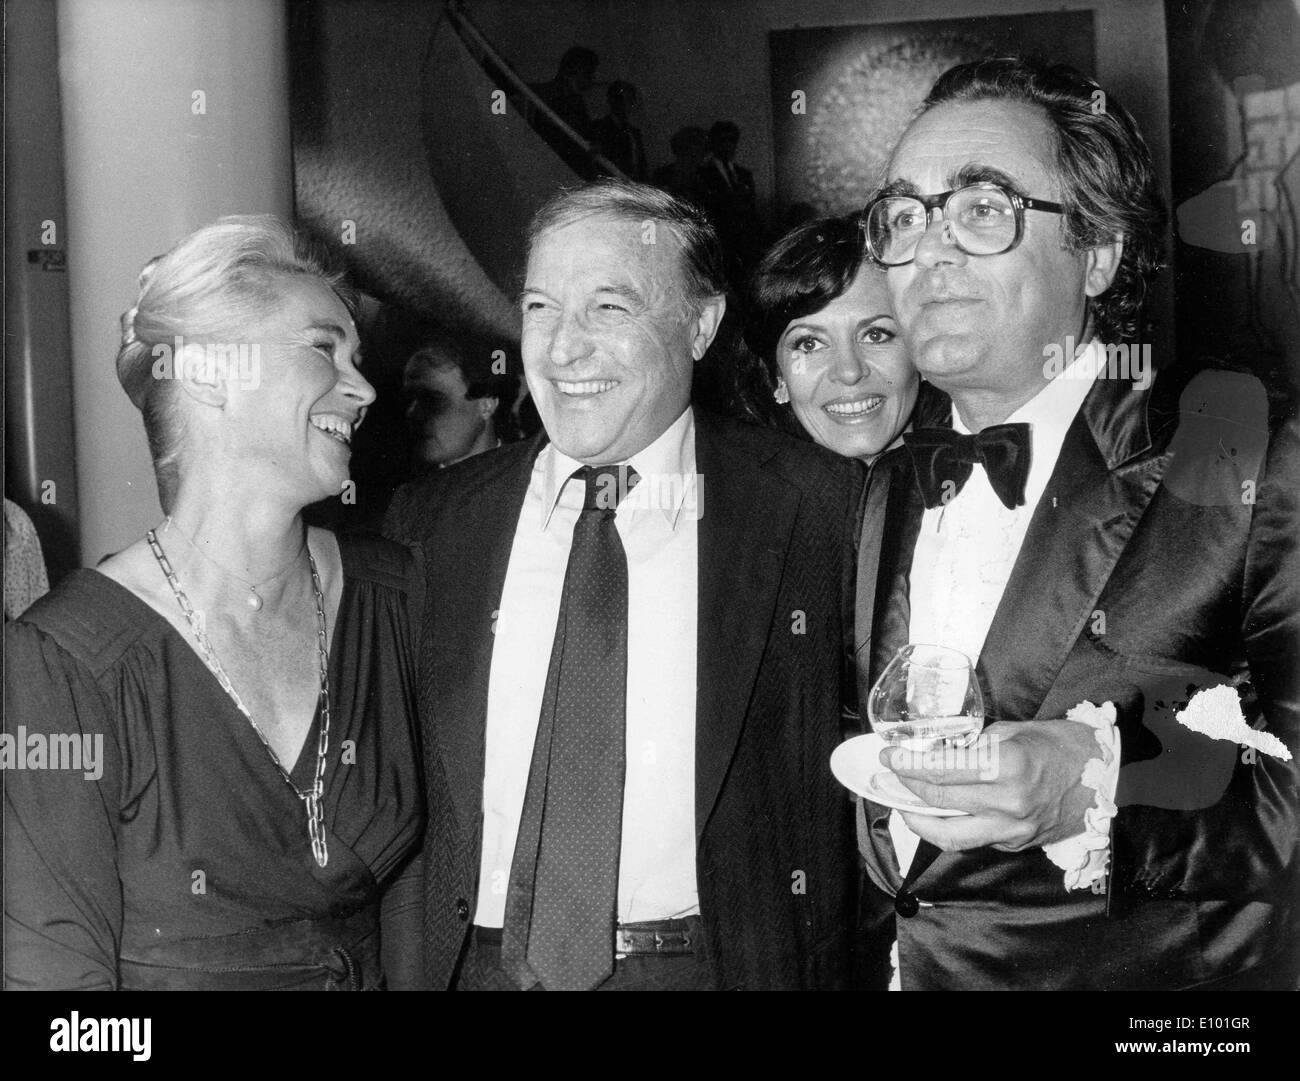 Gene Kelly laughs with Claude Bessy and Michel Legrand - Stock Image